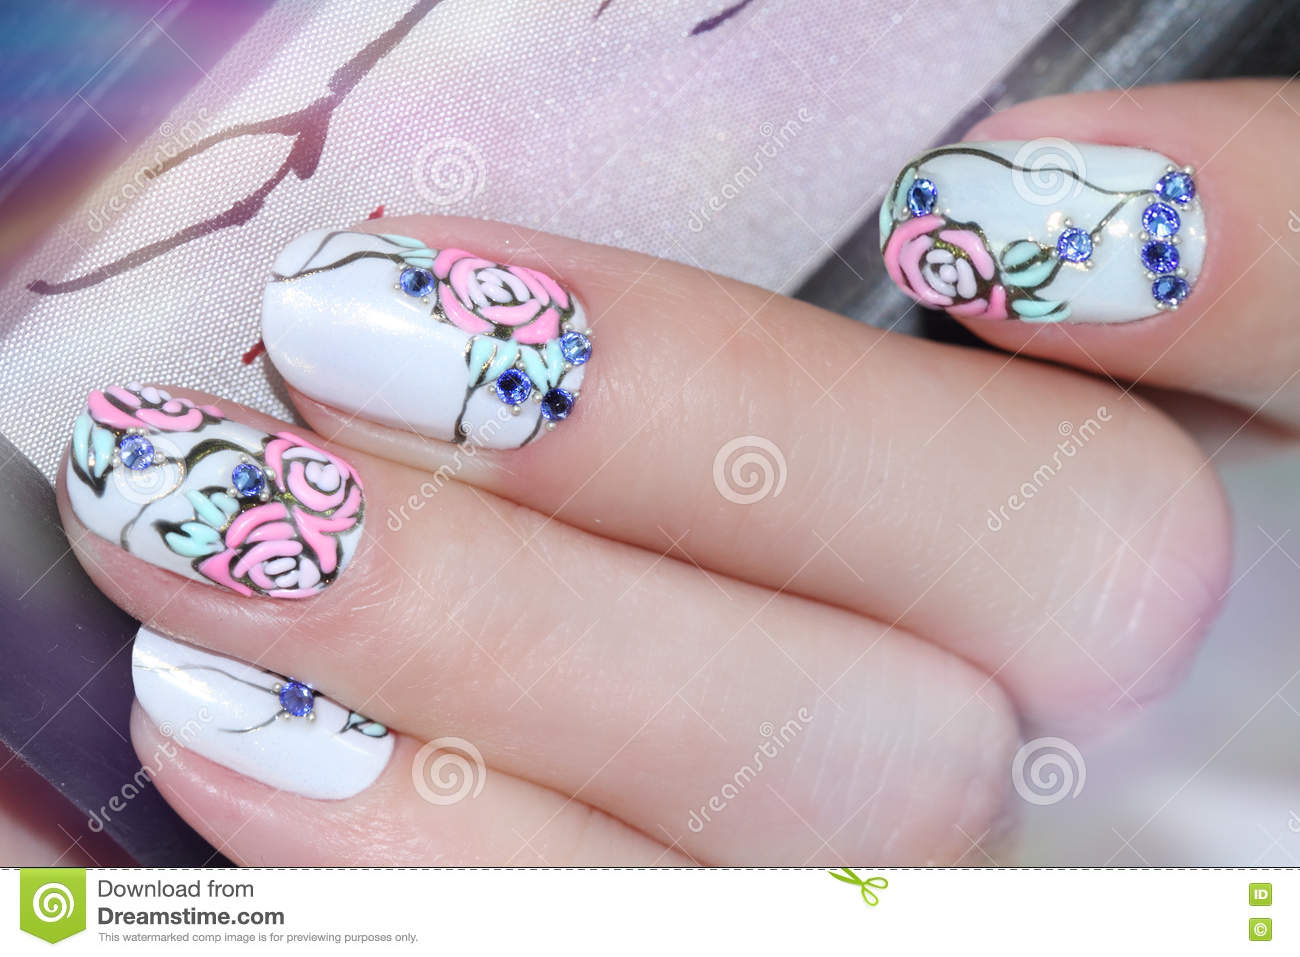 Nail Design . Manicure Nail Paint . Stock Image - Image of beautiful ...